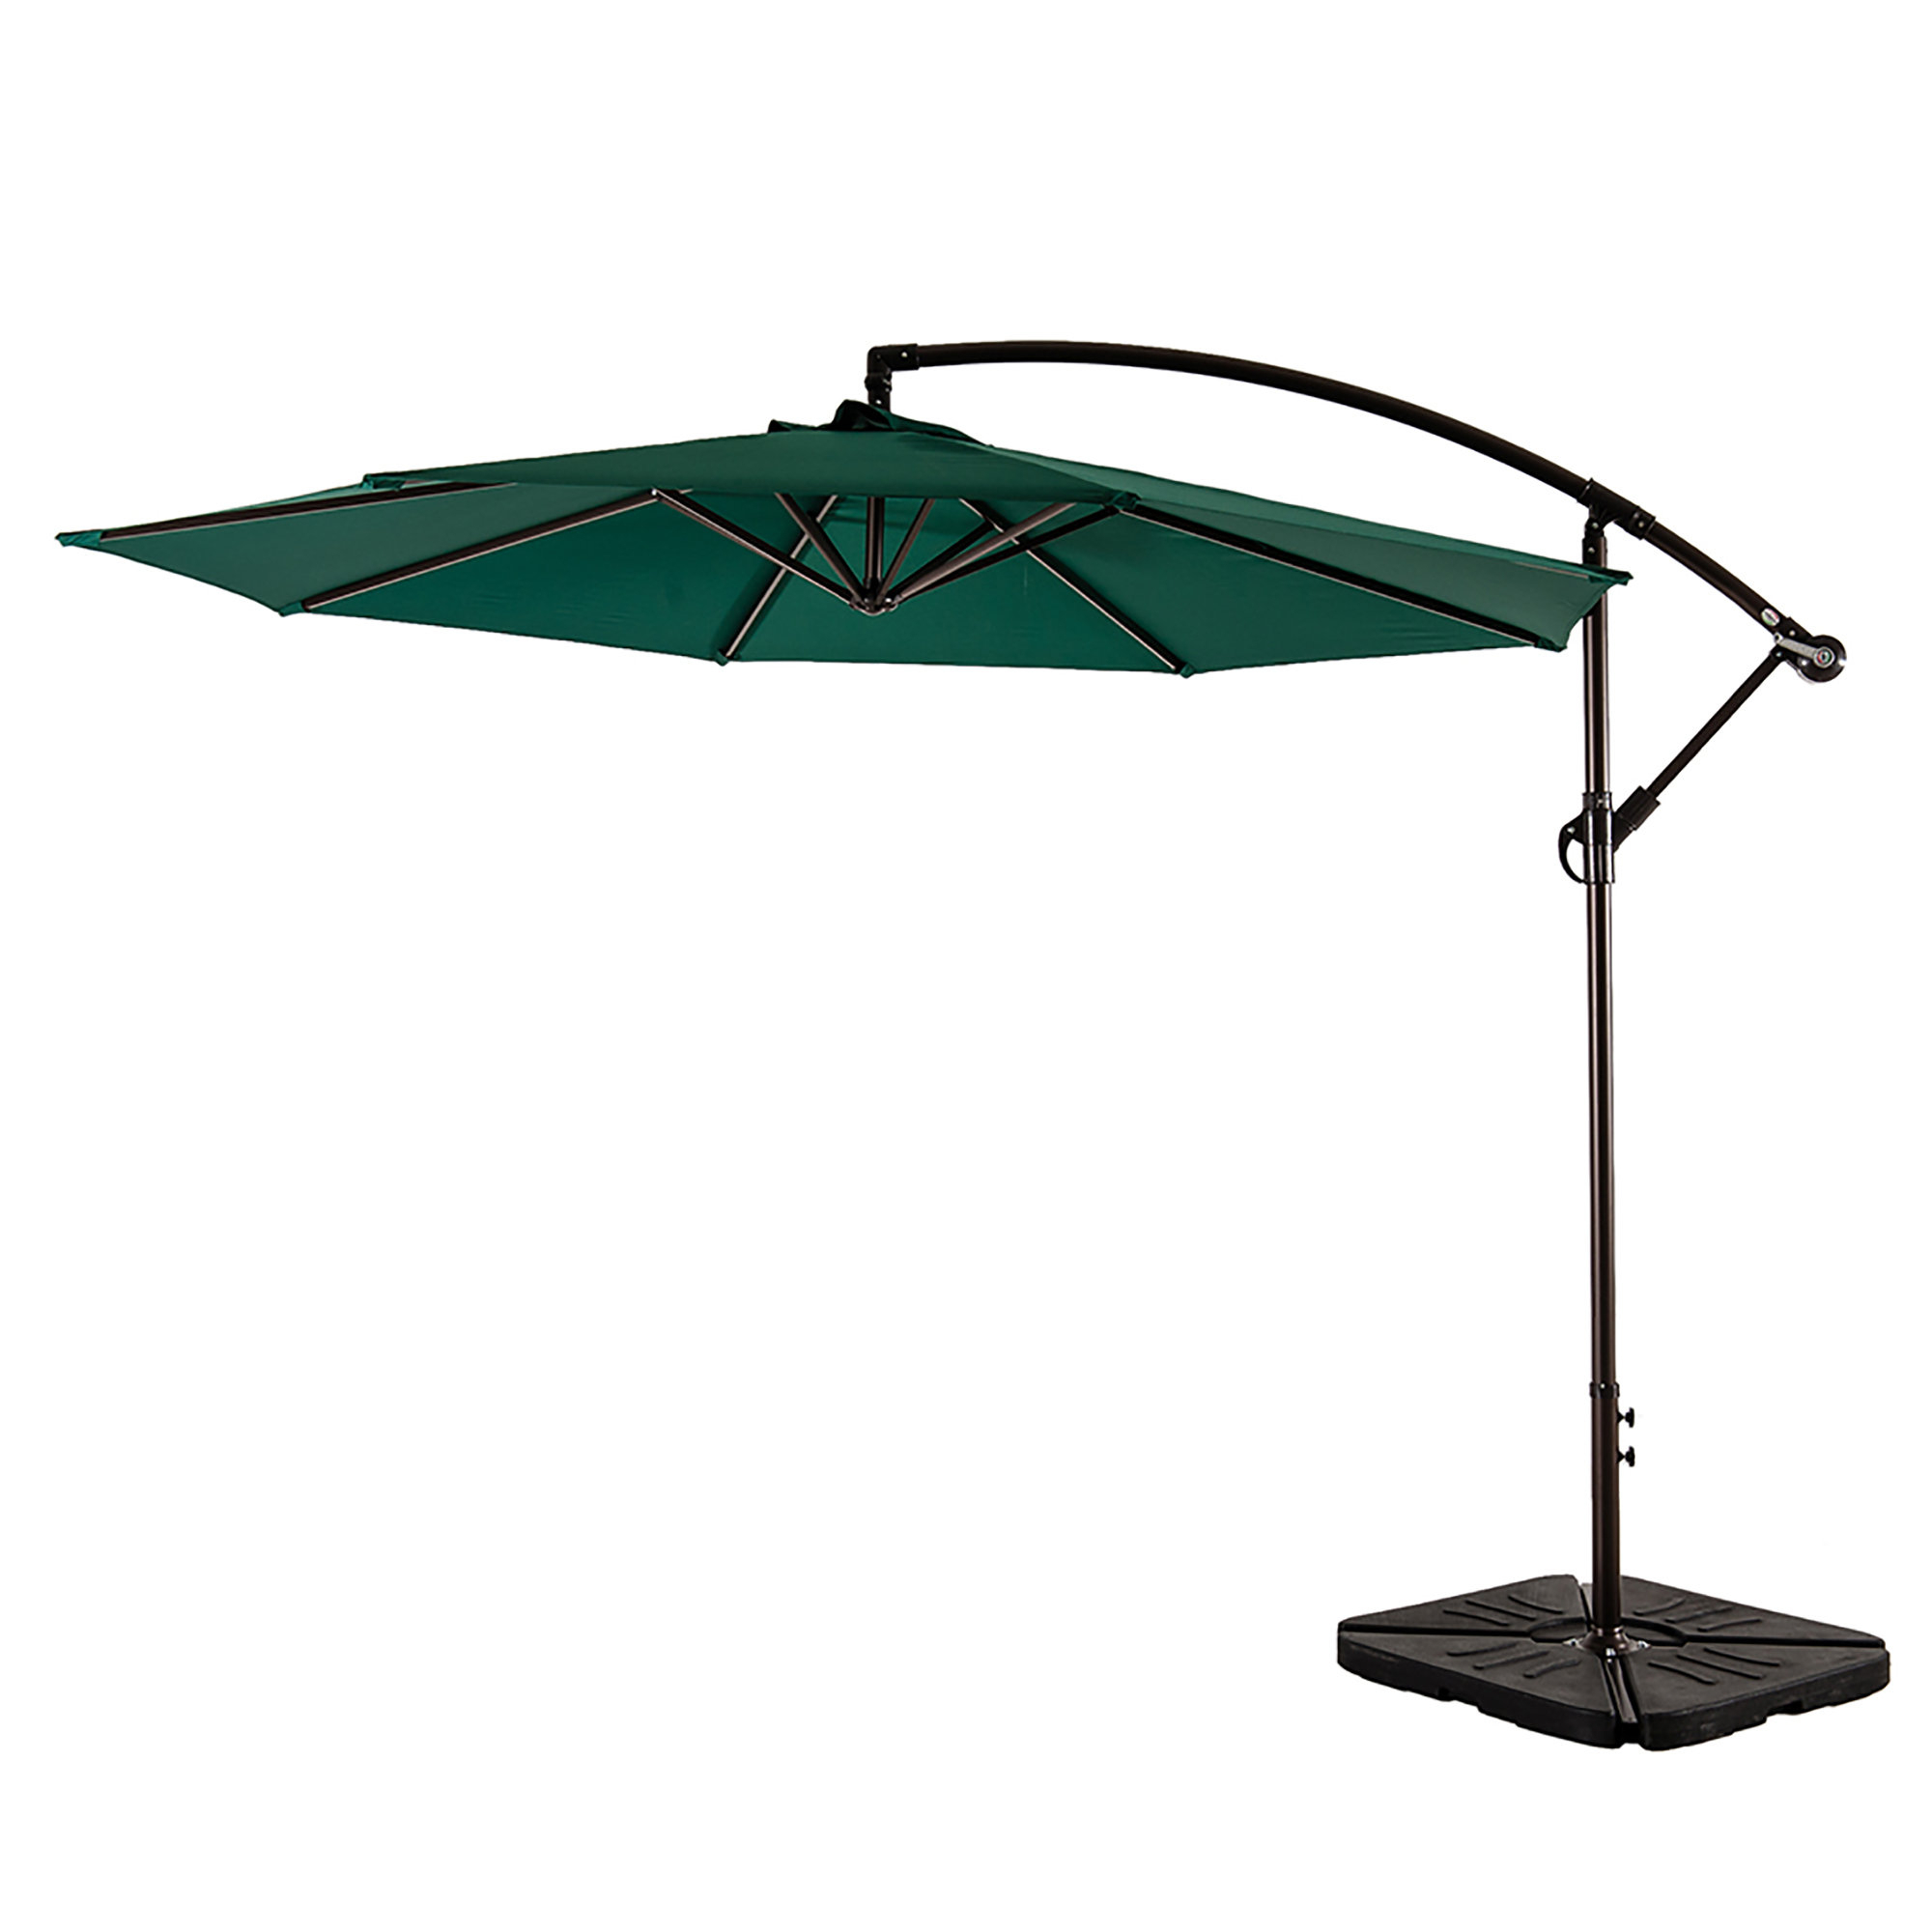 Karr 10' Cantilever Umbrella In Most Recent Trotman Cantilever Umbrellas (View 6 of 20)